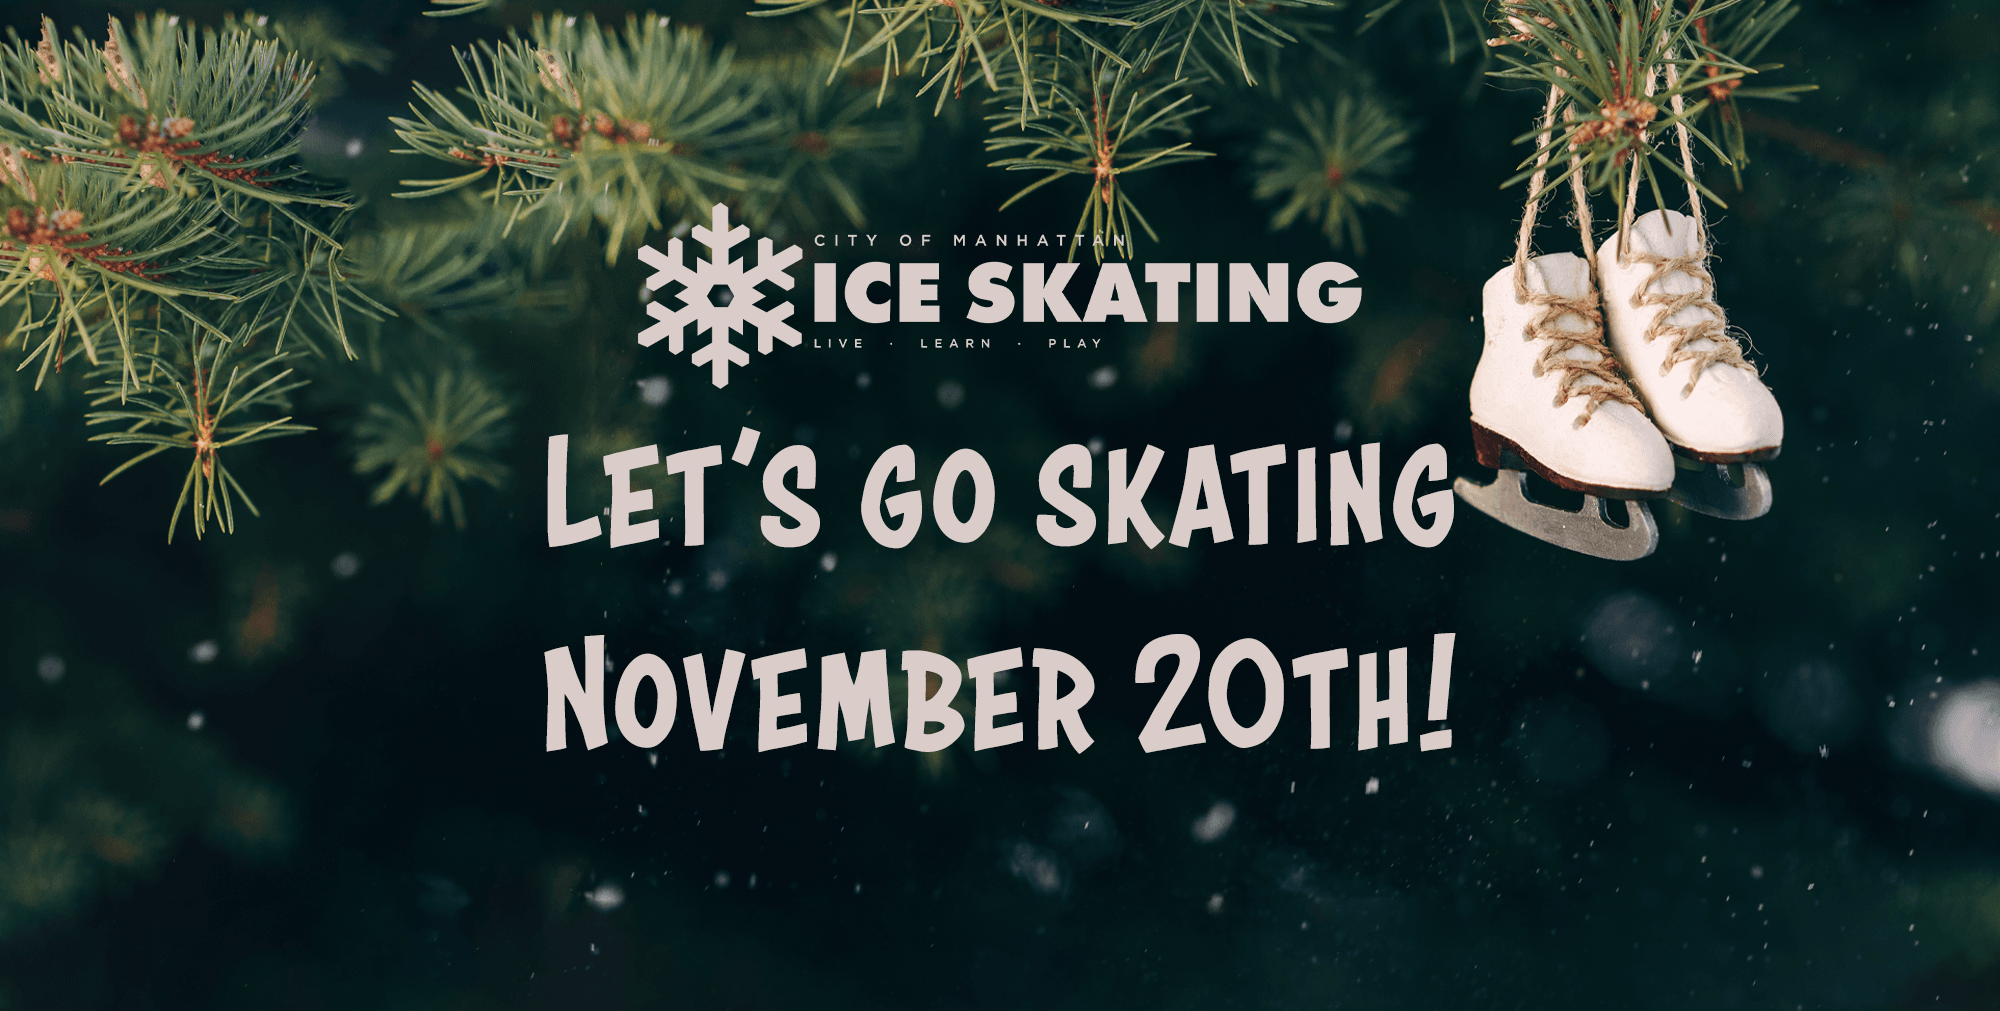 Let's Go Skating